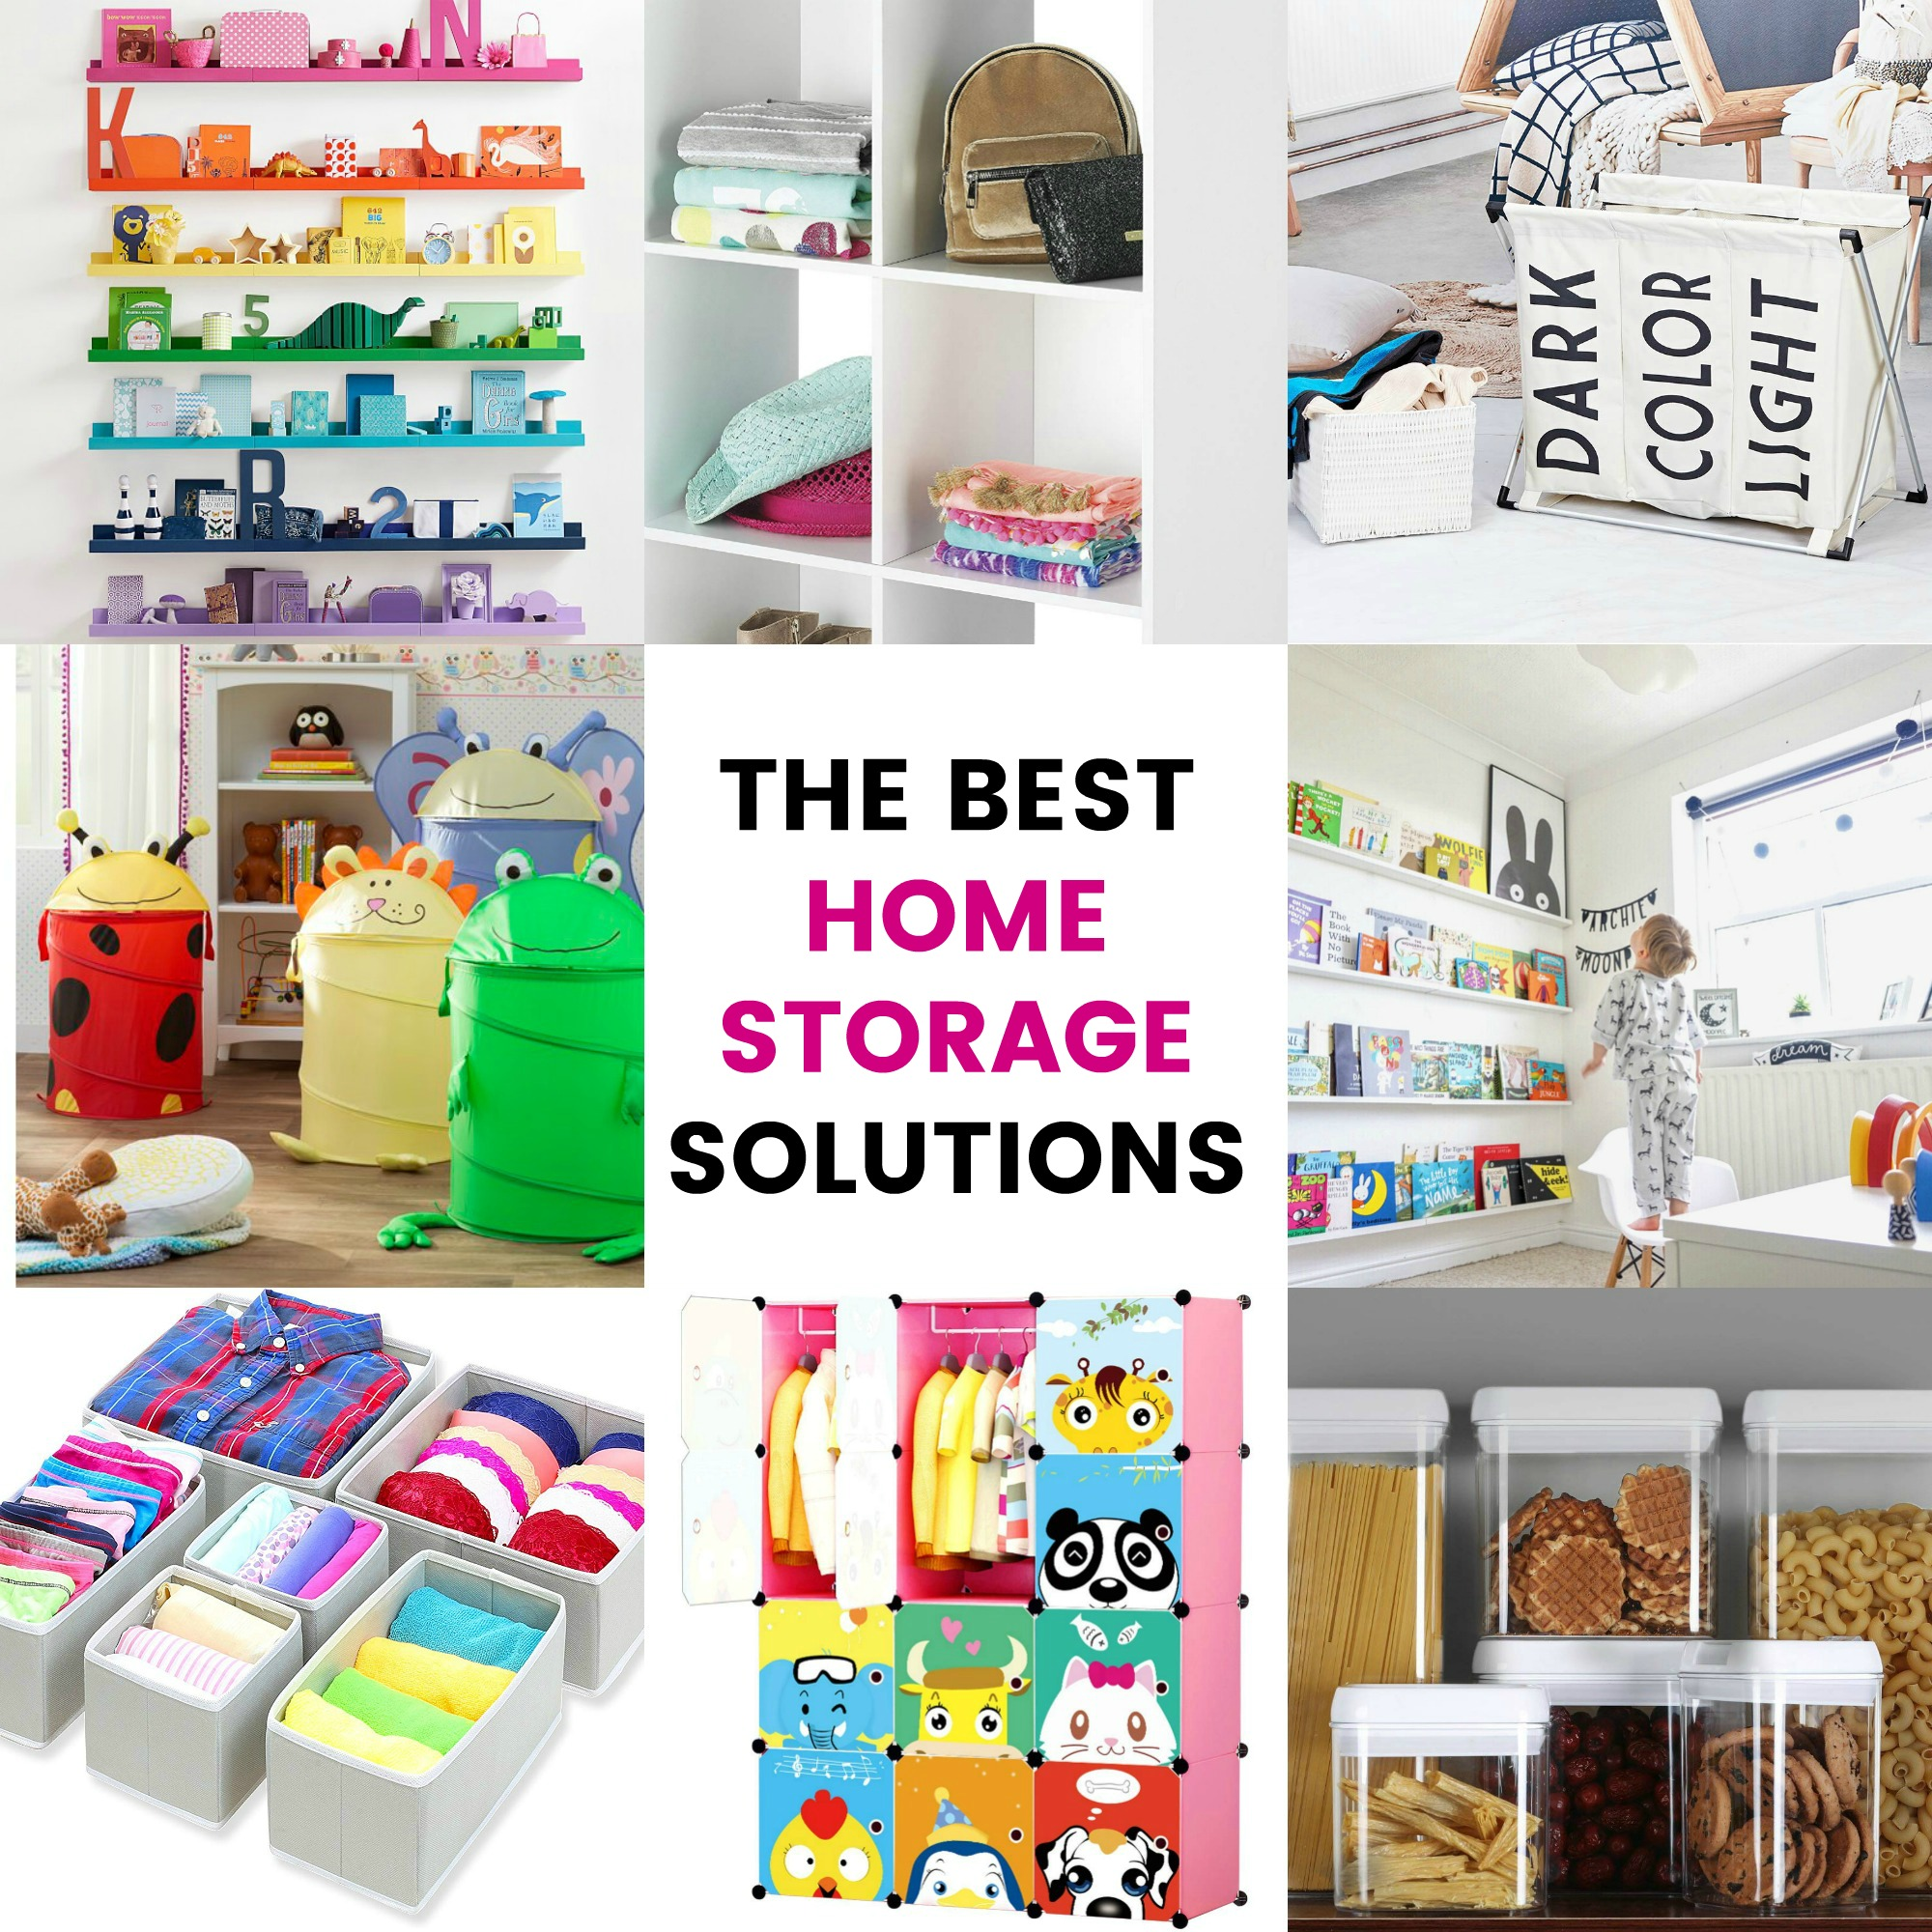 Home Storage Ideas: How to organize your house once and for all!